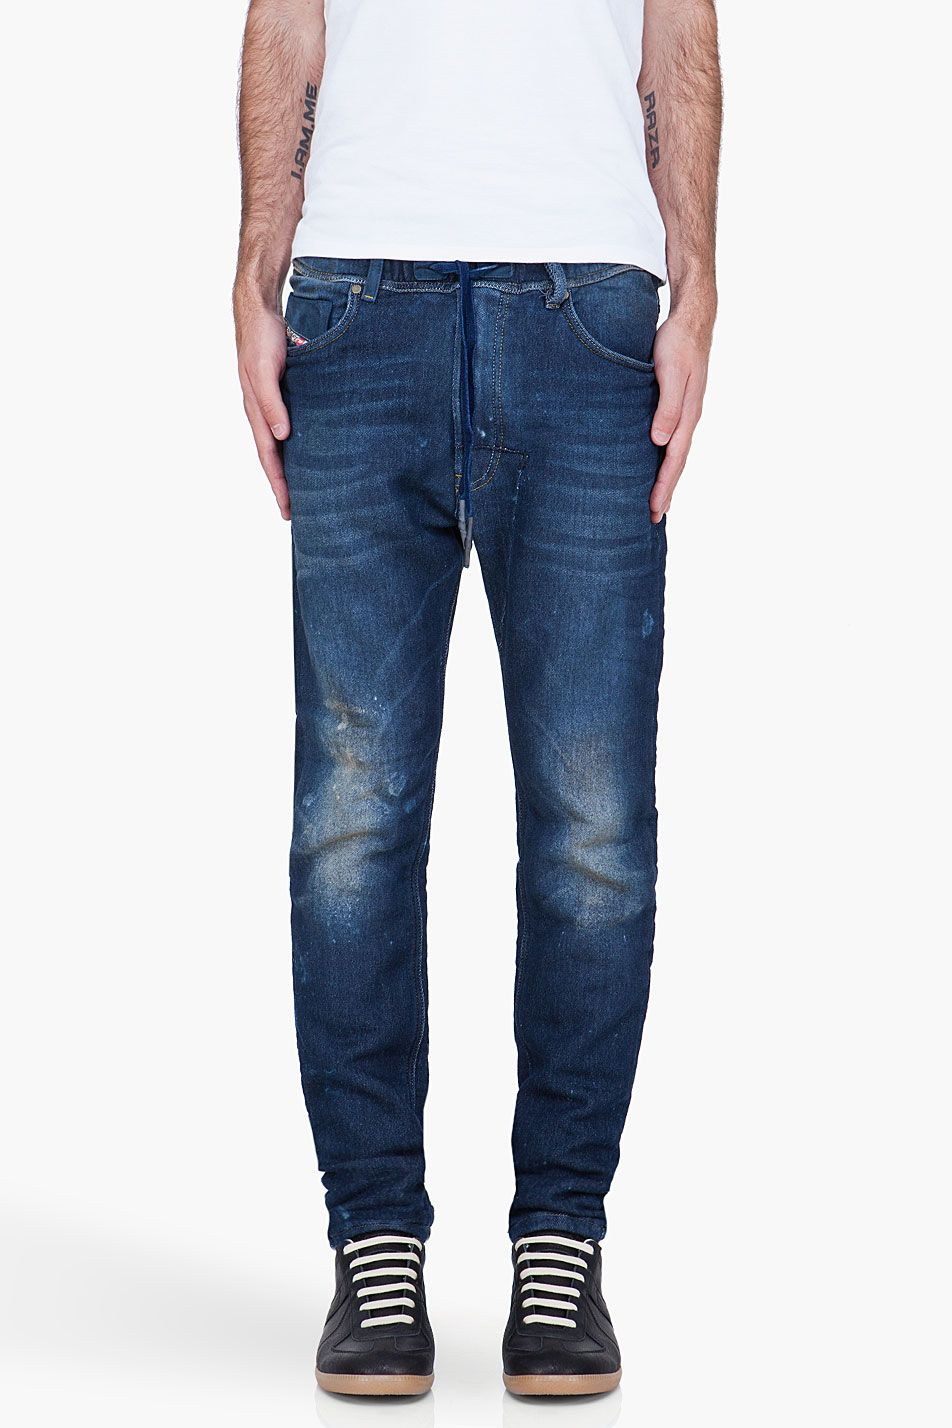 c218e79c DIESEL Blue Narrot Jogg Jeans | Another Style Perspective